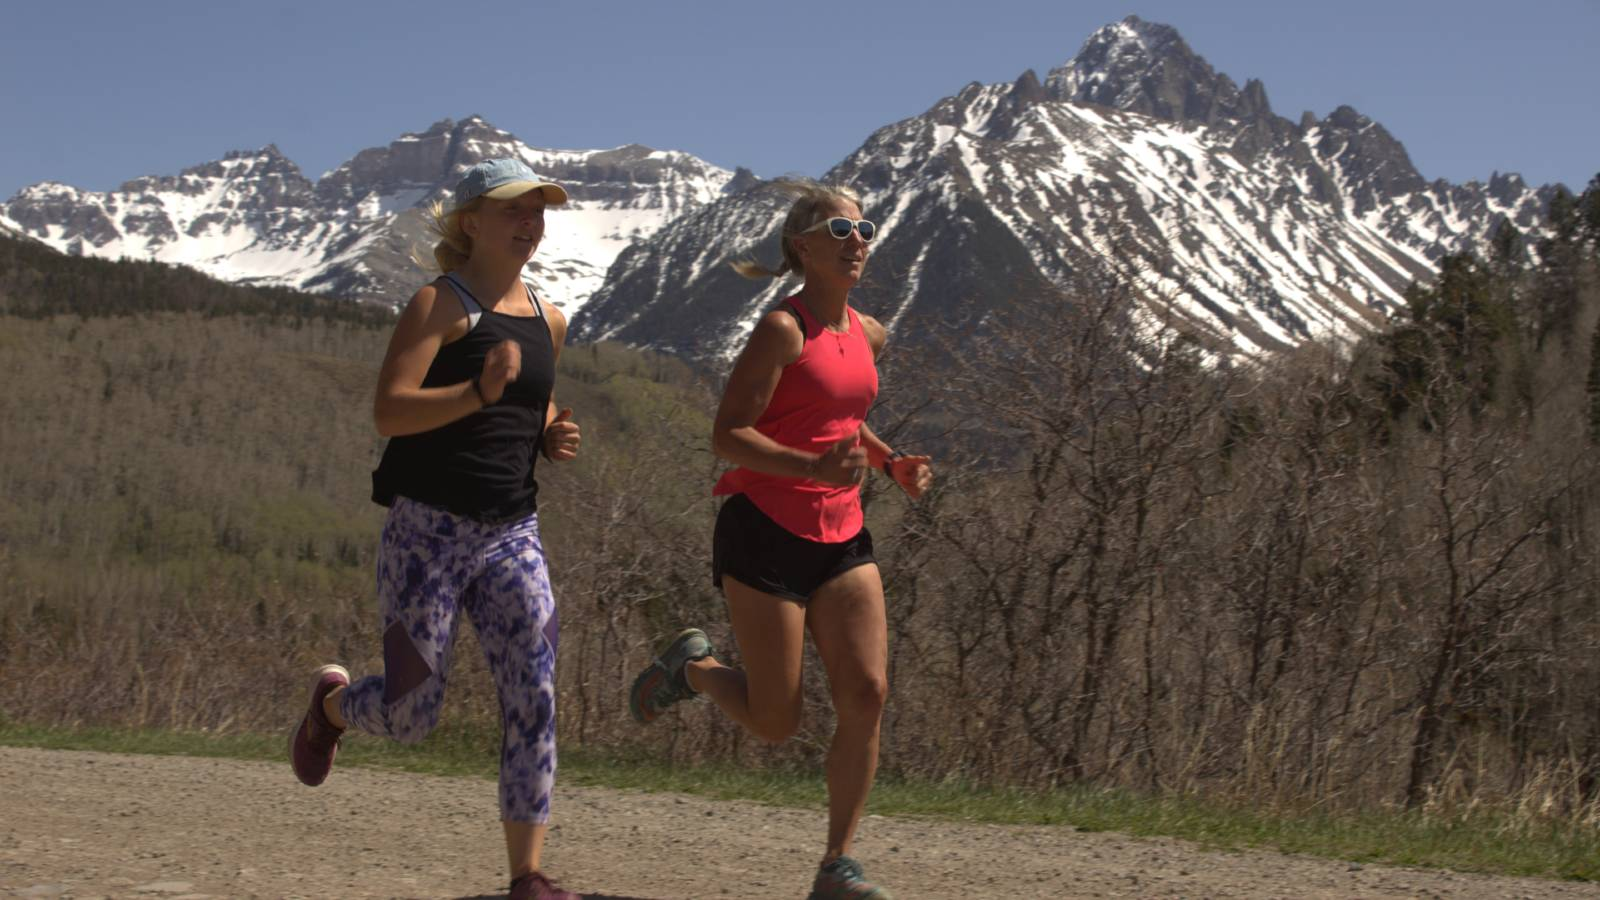 Run Hut Run – Summer Running Programs and Retreats